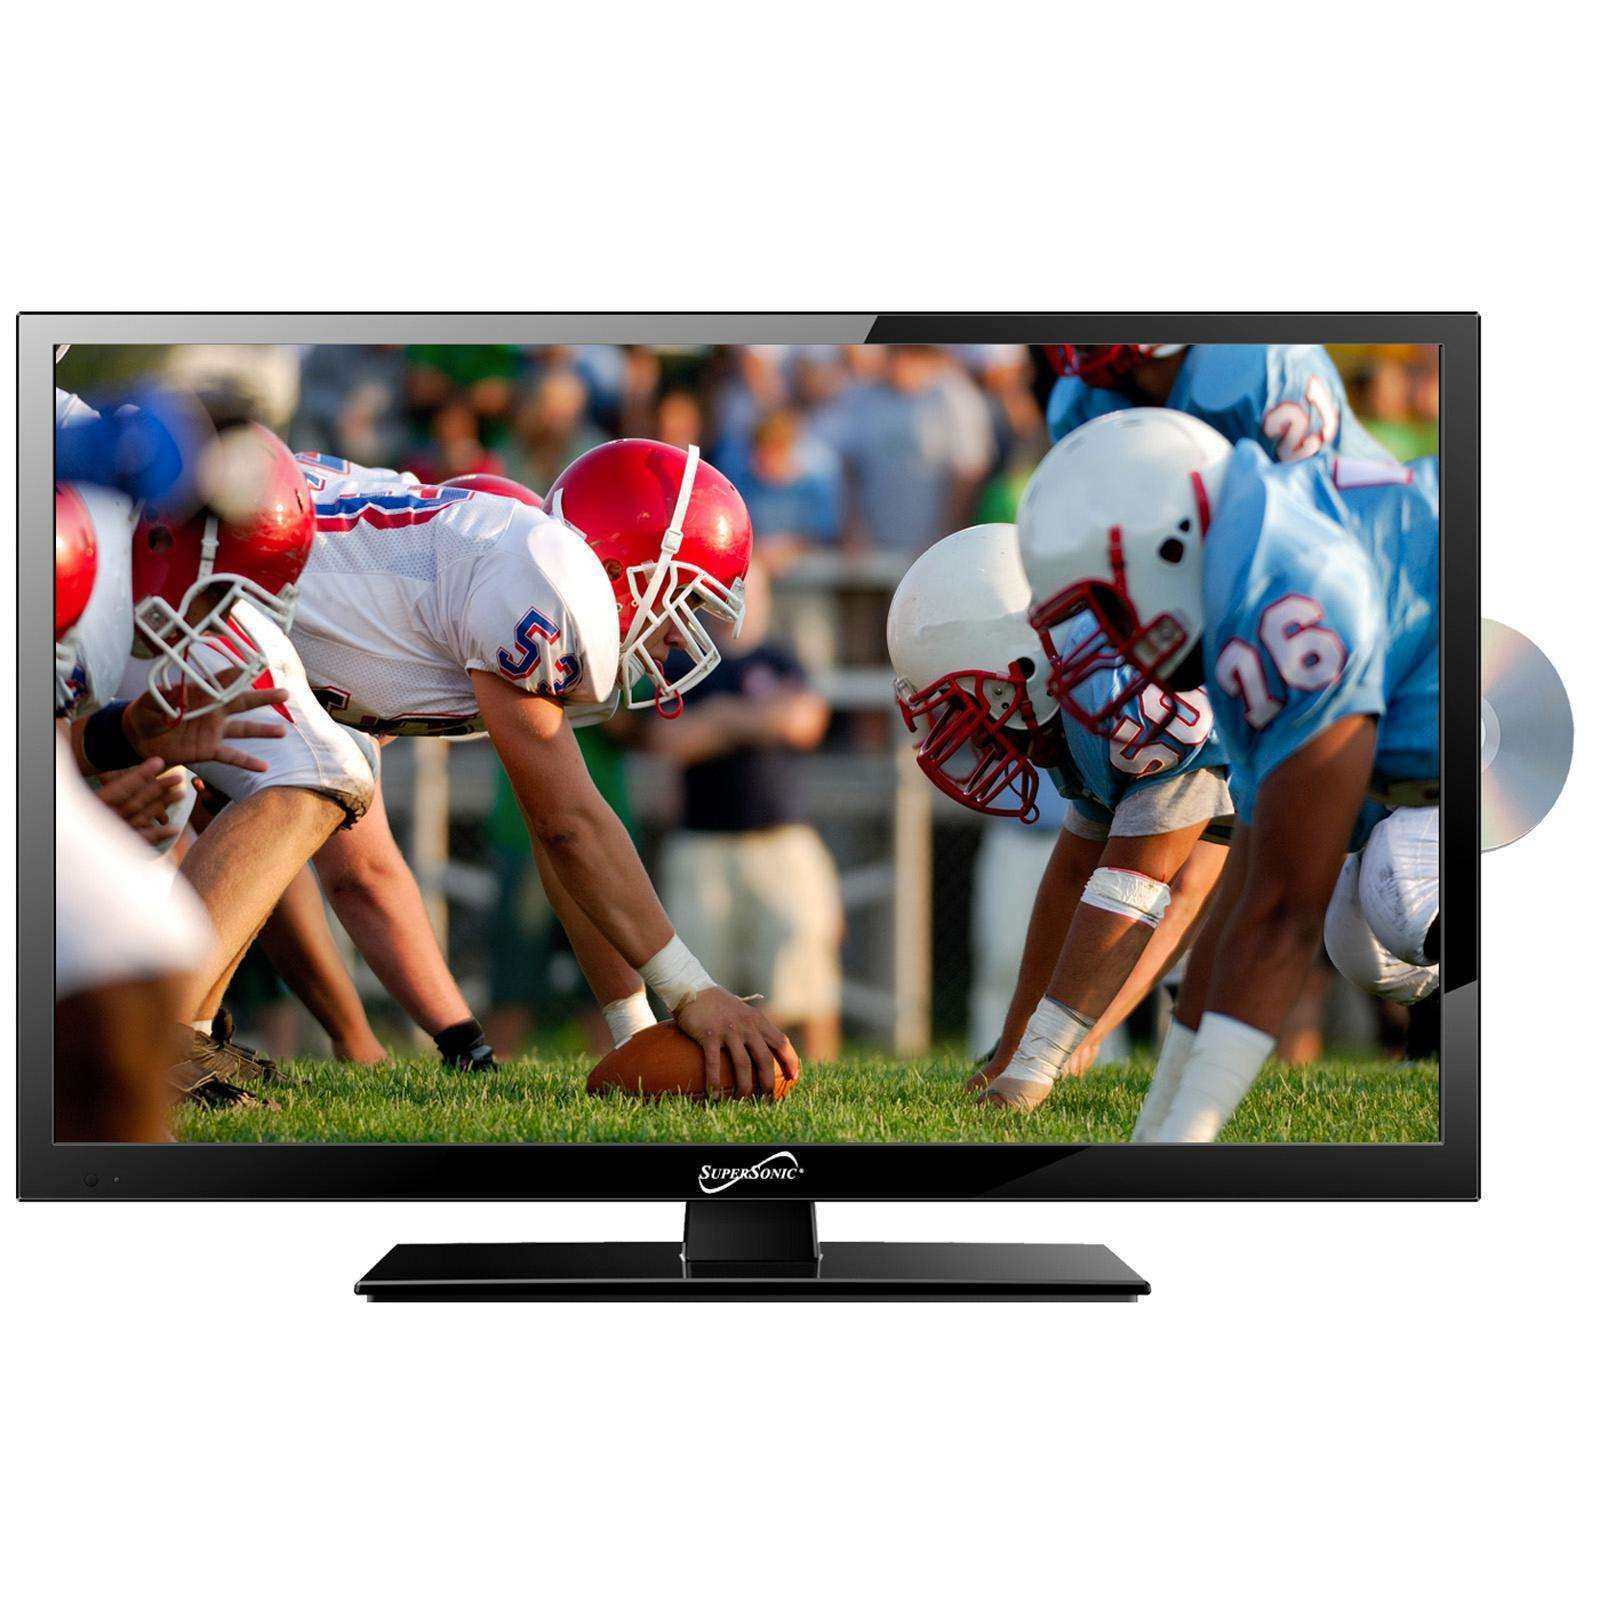 "Supersonic 19"" LED HDTV with DVD, USB-SD, HDMI INPUTS"